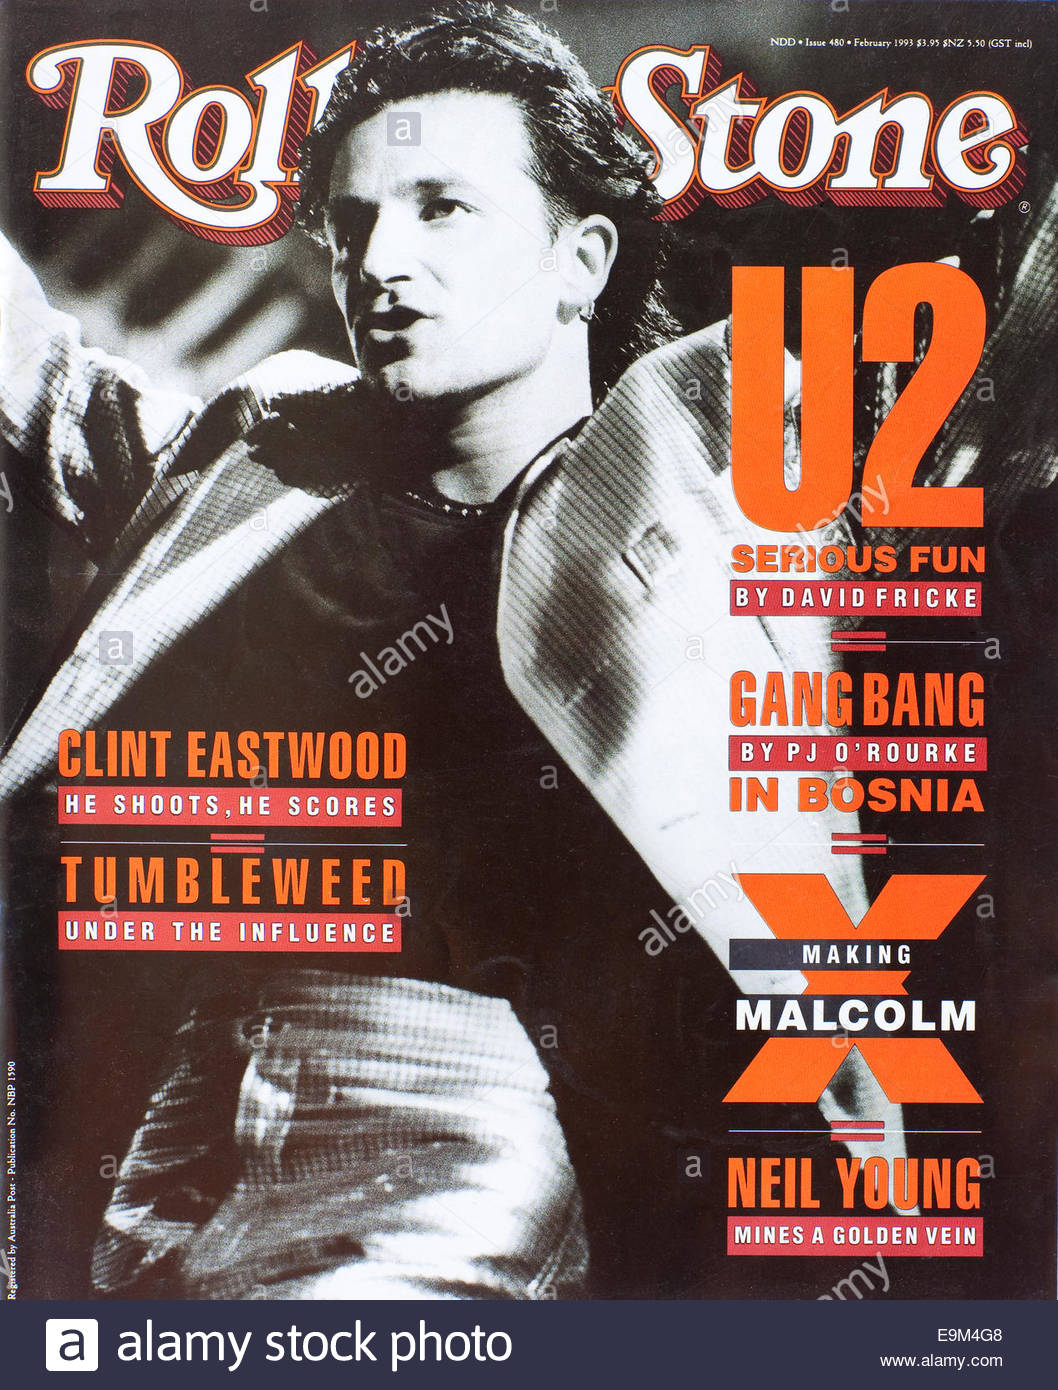 The cover of Rolling Stone Magazine (Australia) February 1993 Featuring Bono from U2 - Stock Image